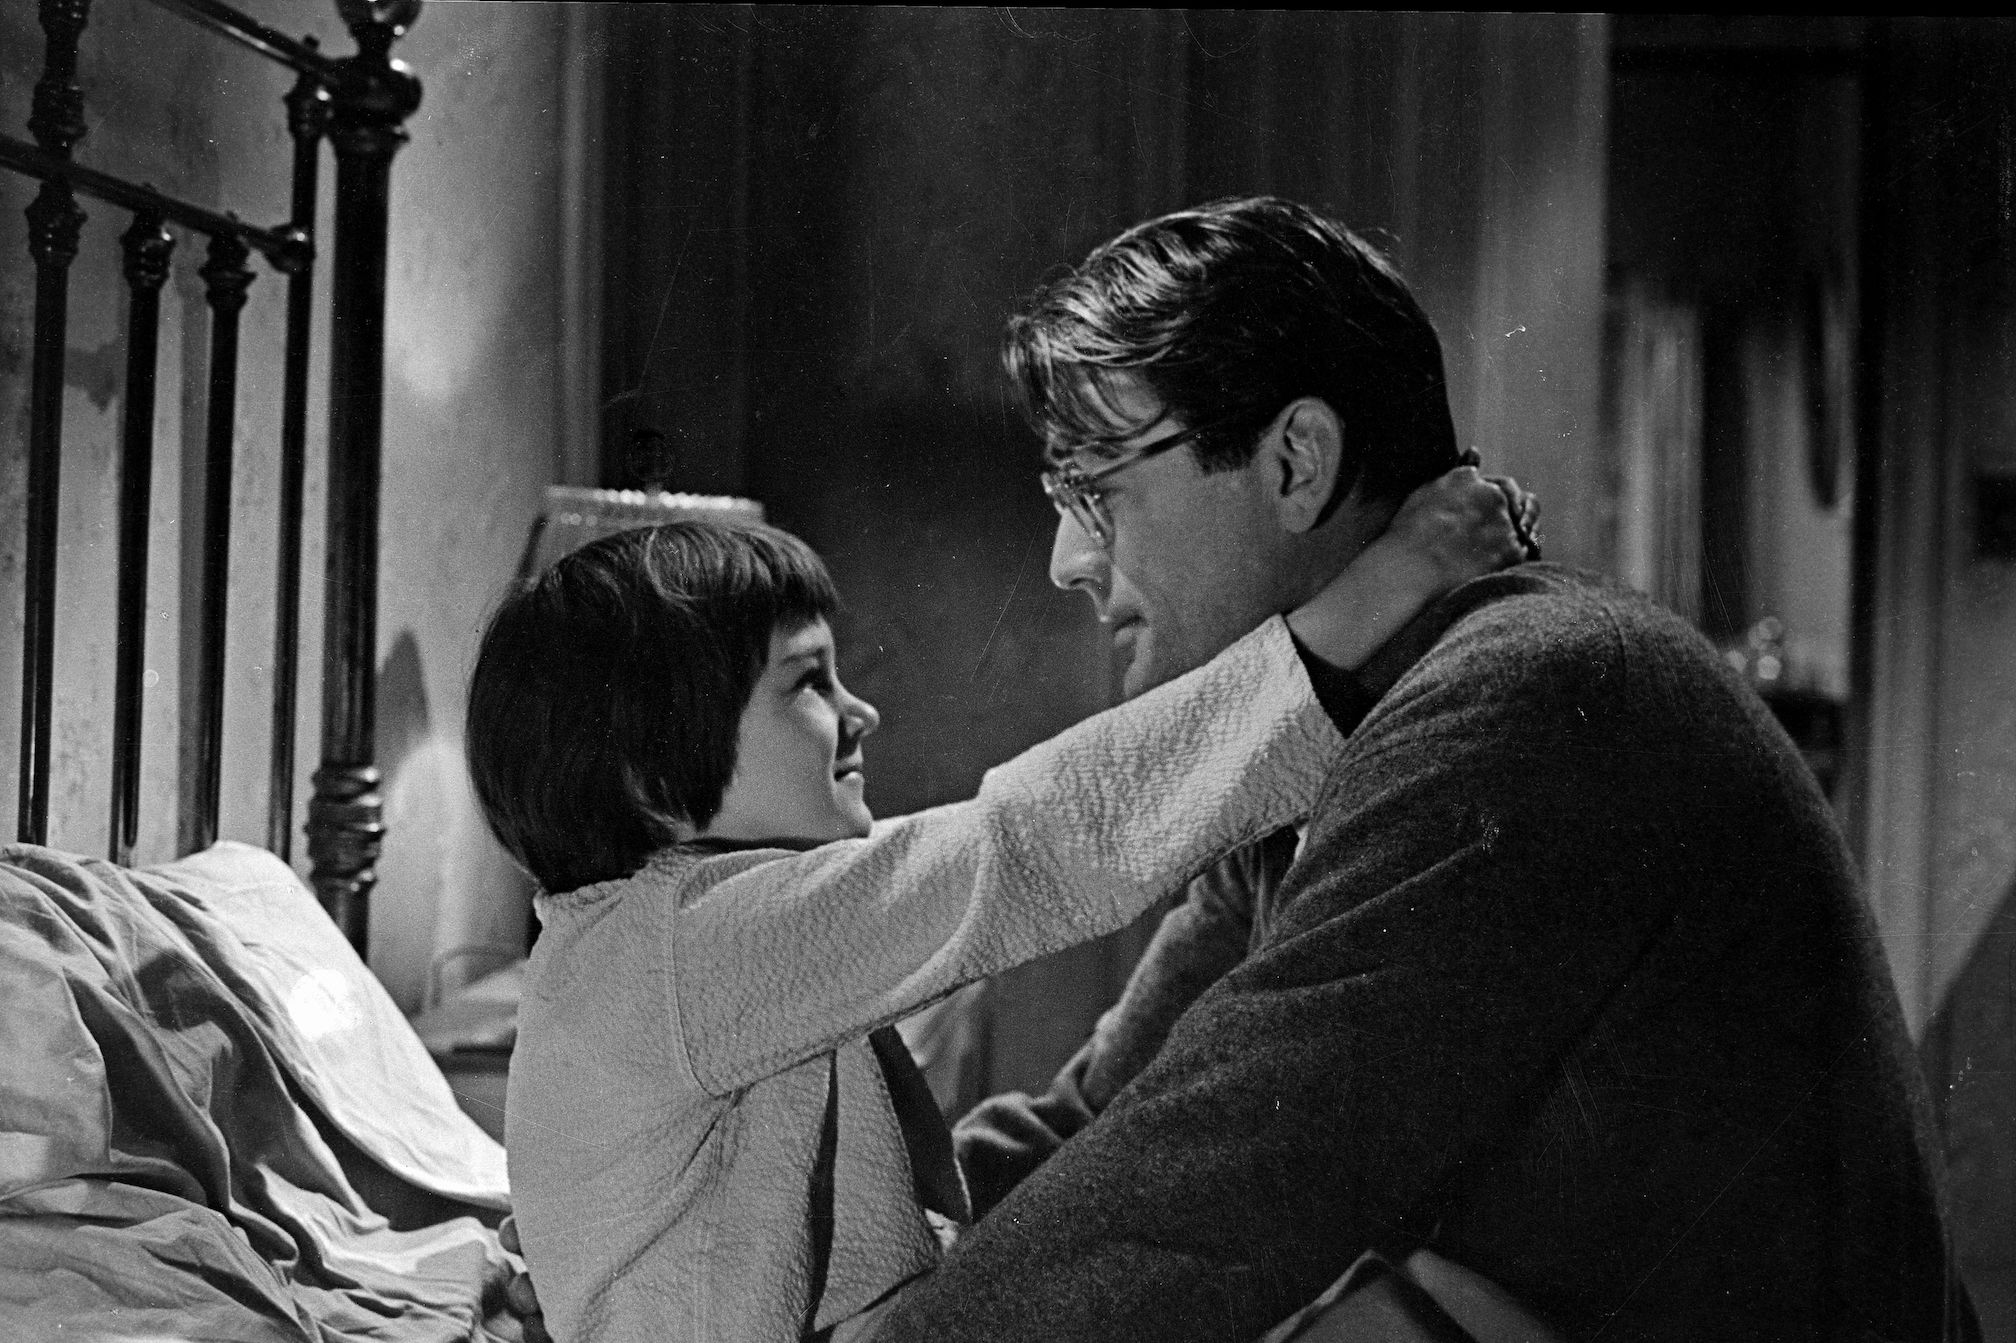 Mary Badham Shares Behind-the-Scenes Stories from Her Iconic Role in <i>To Kill a Mockingbird</i>